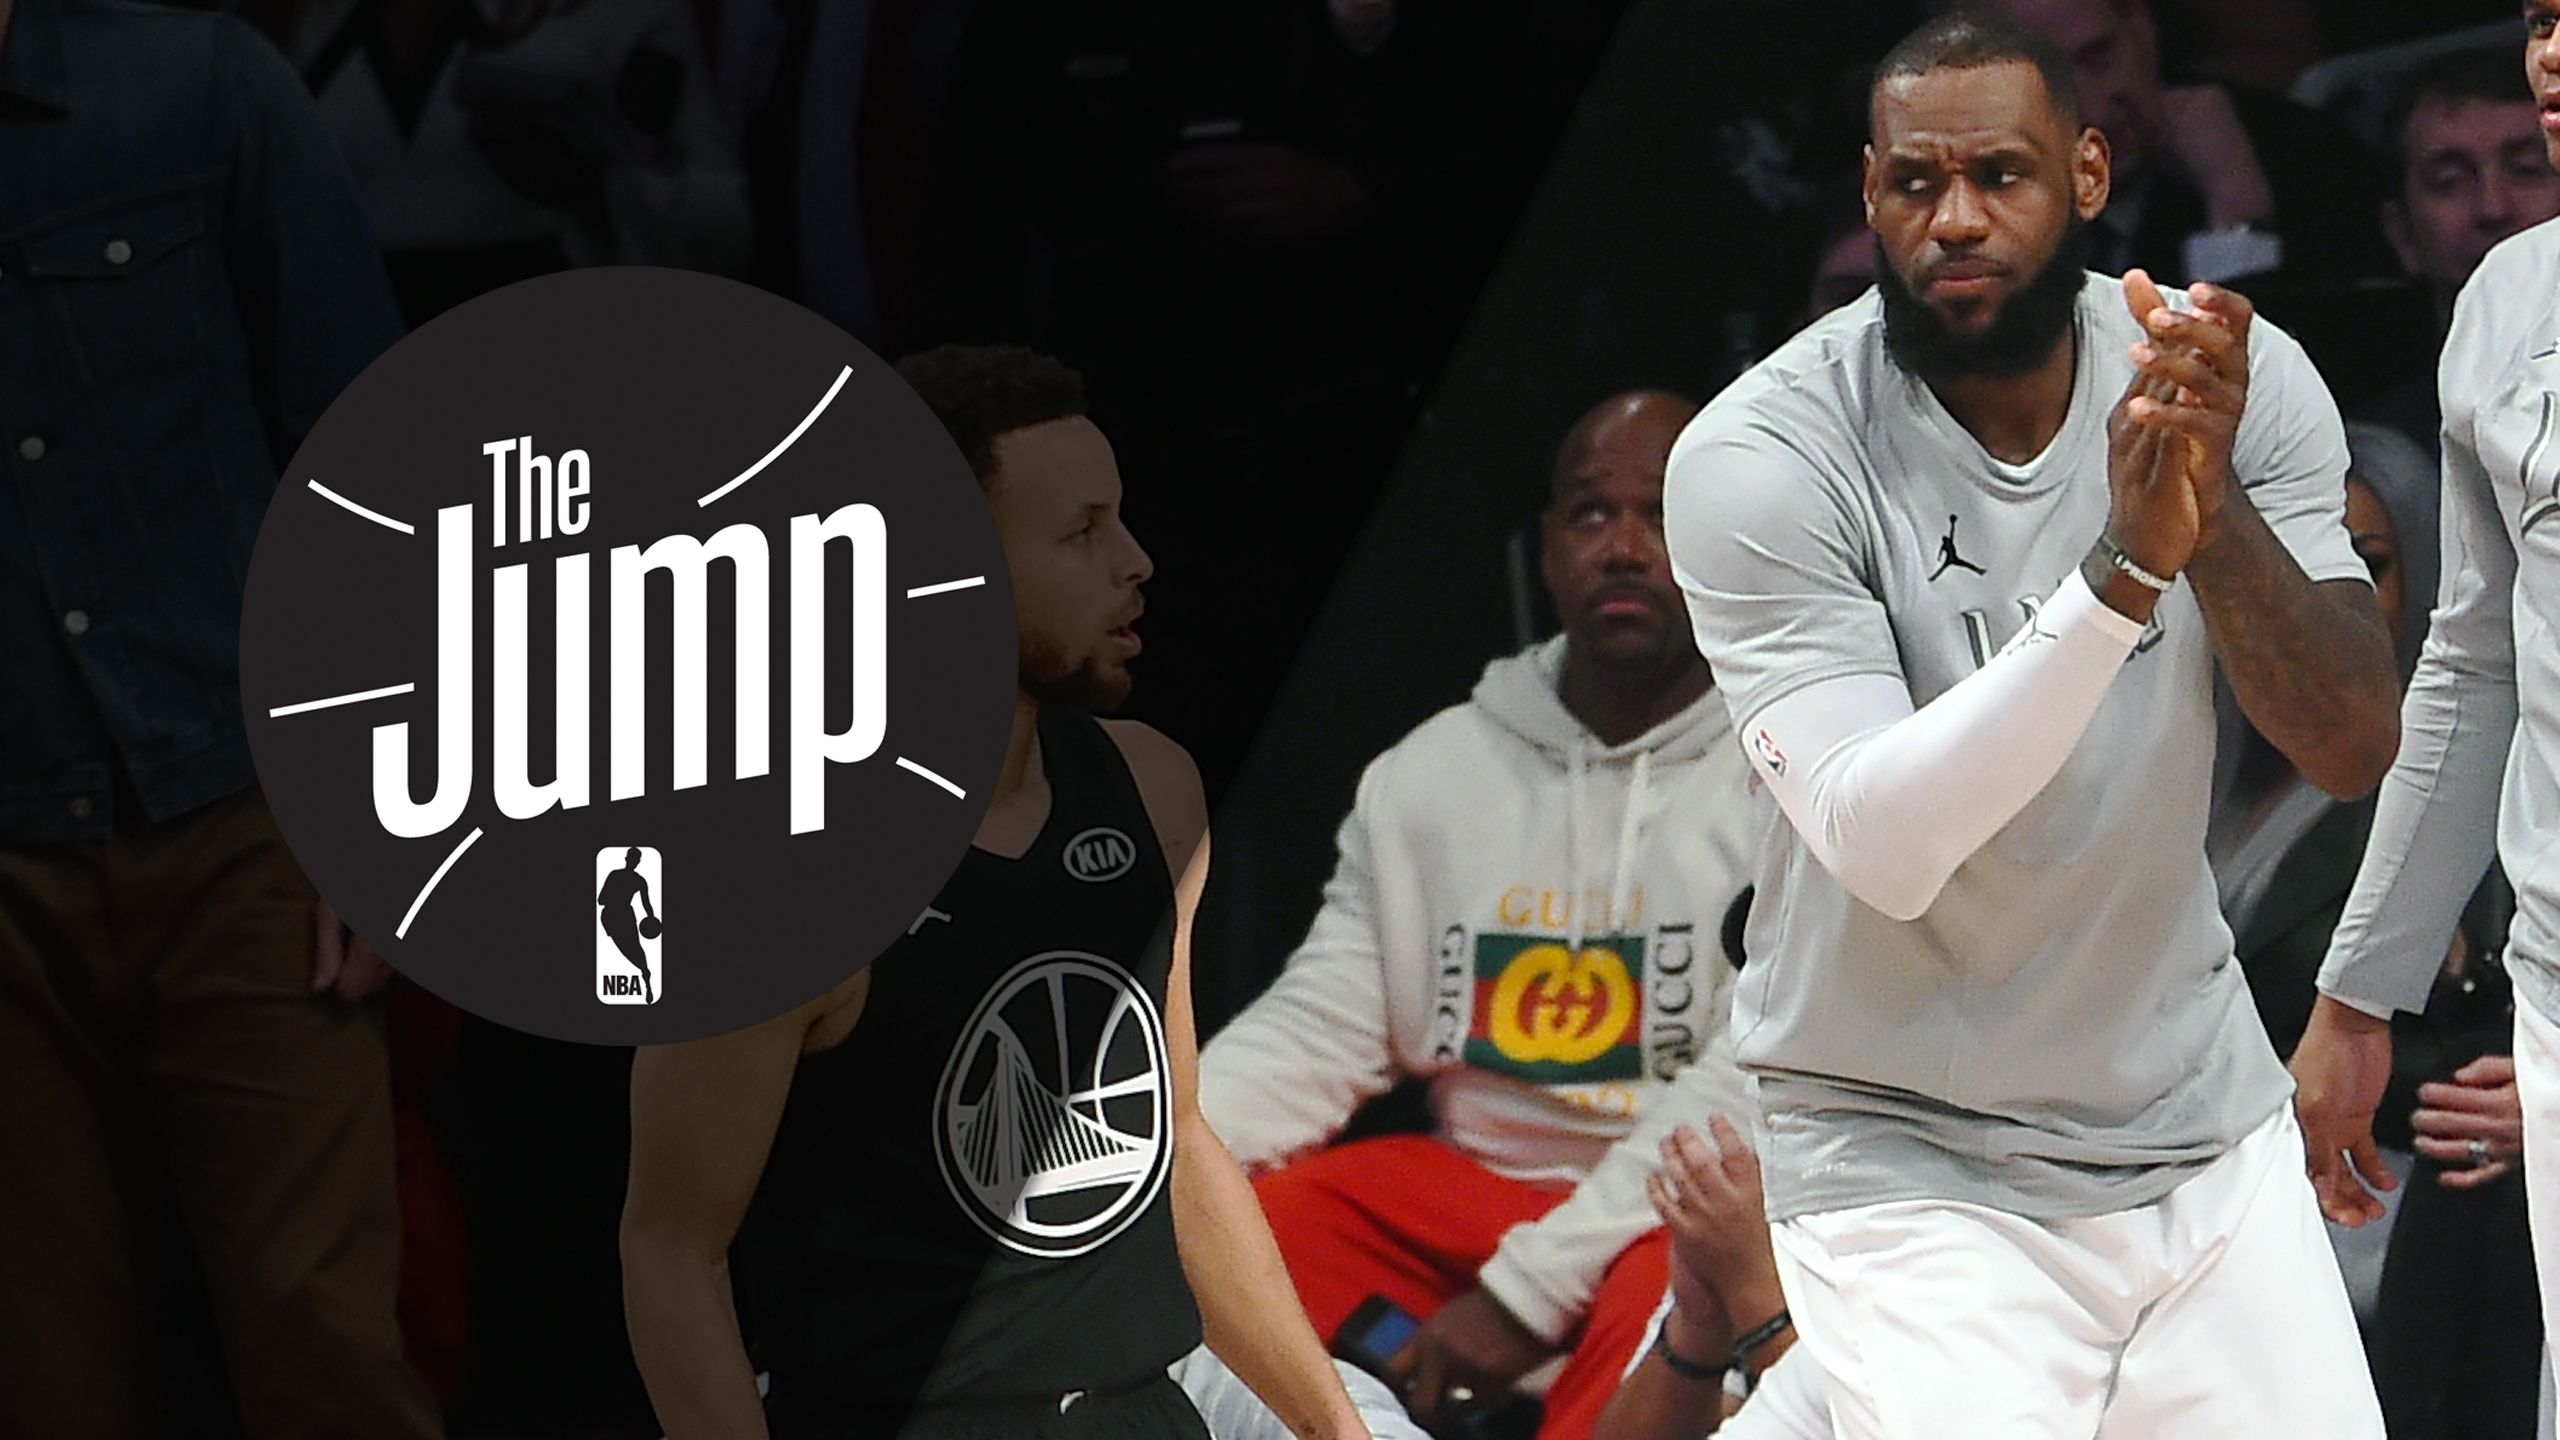 Mon, 2/19 - NBA: The Jump